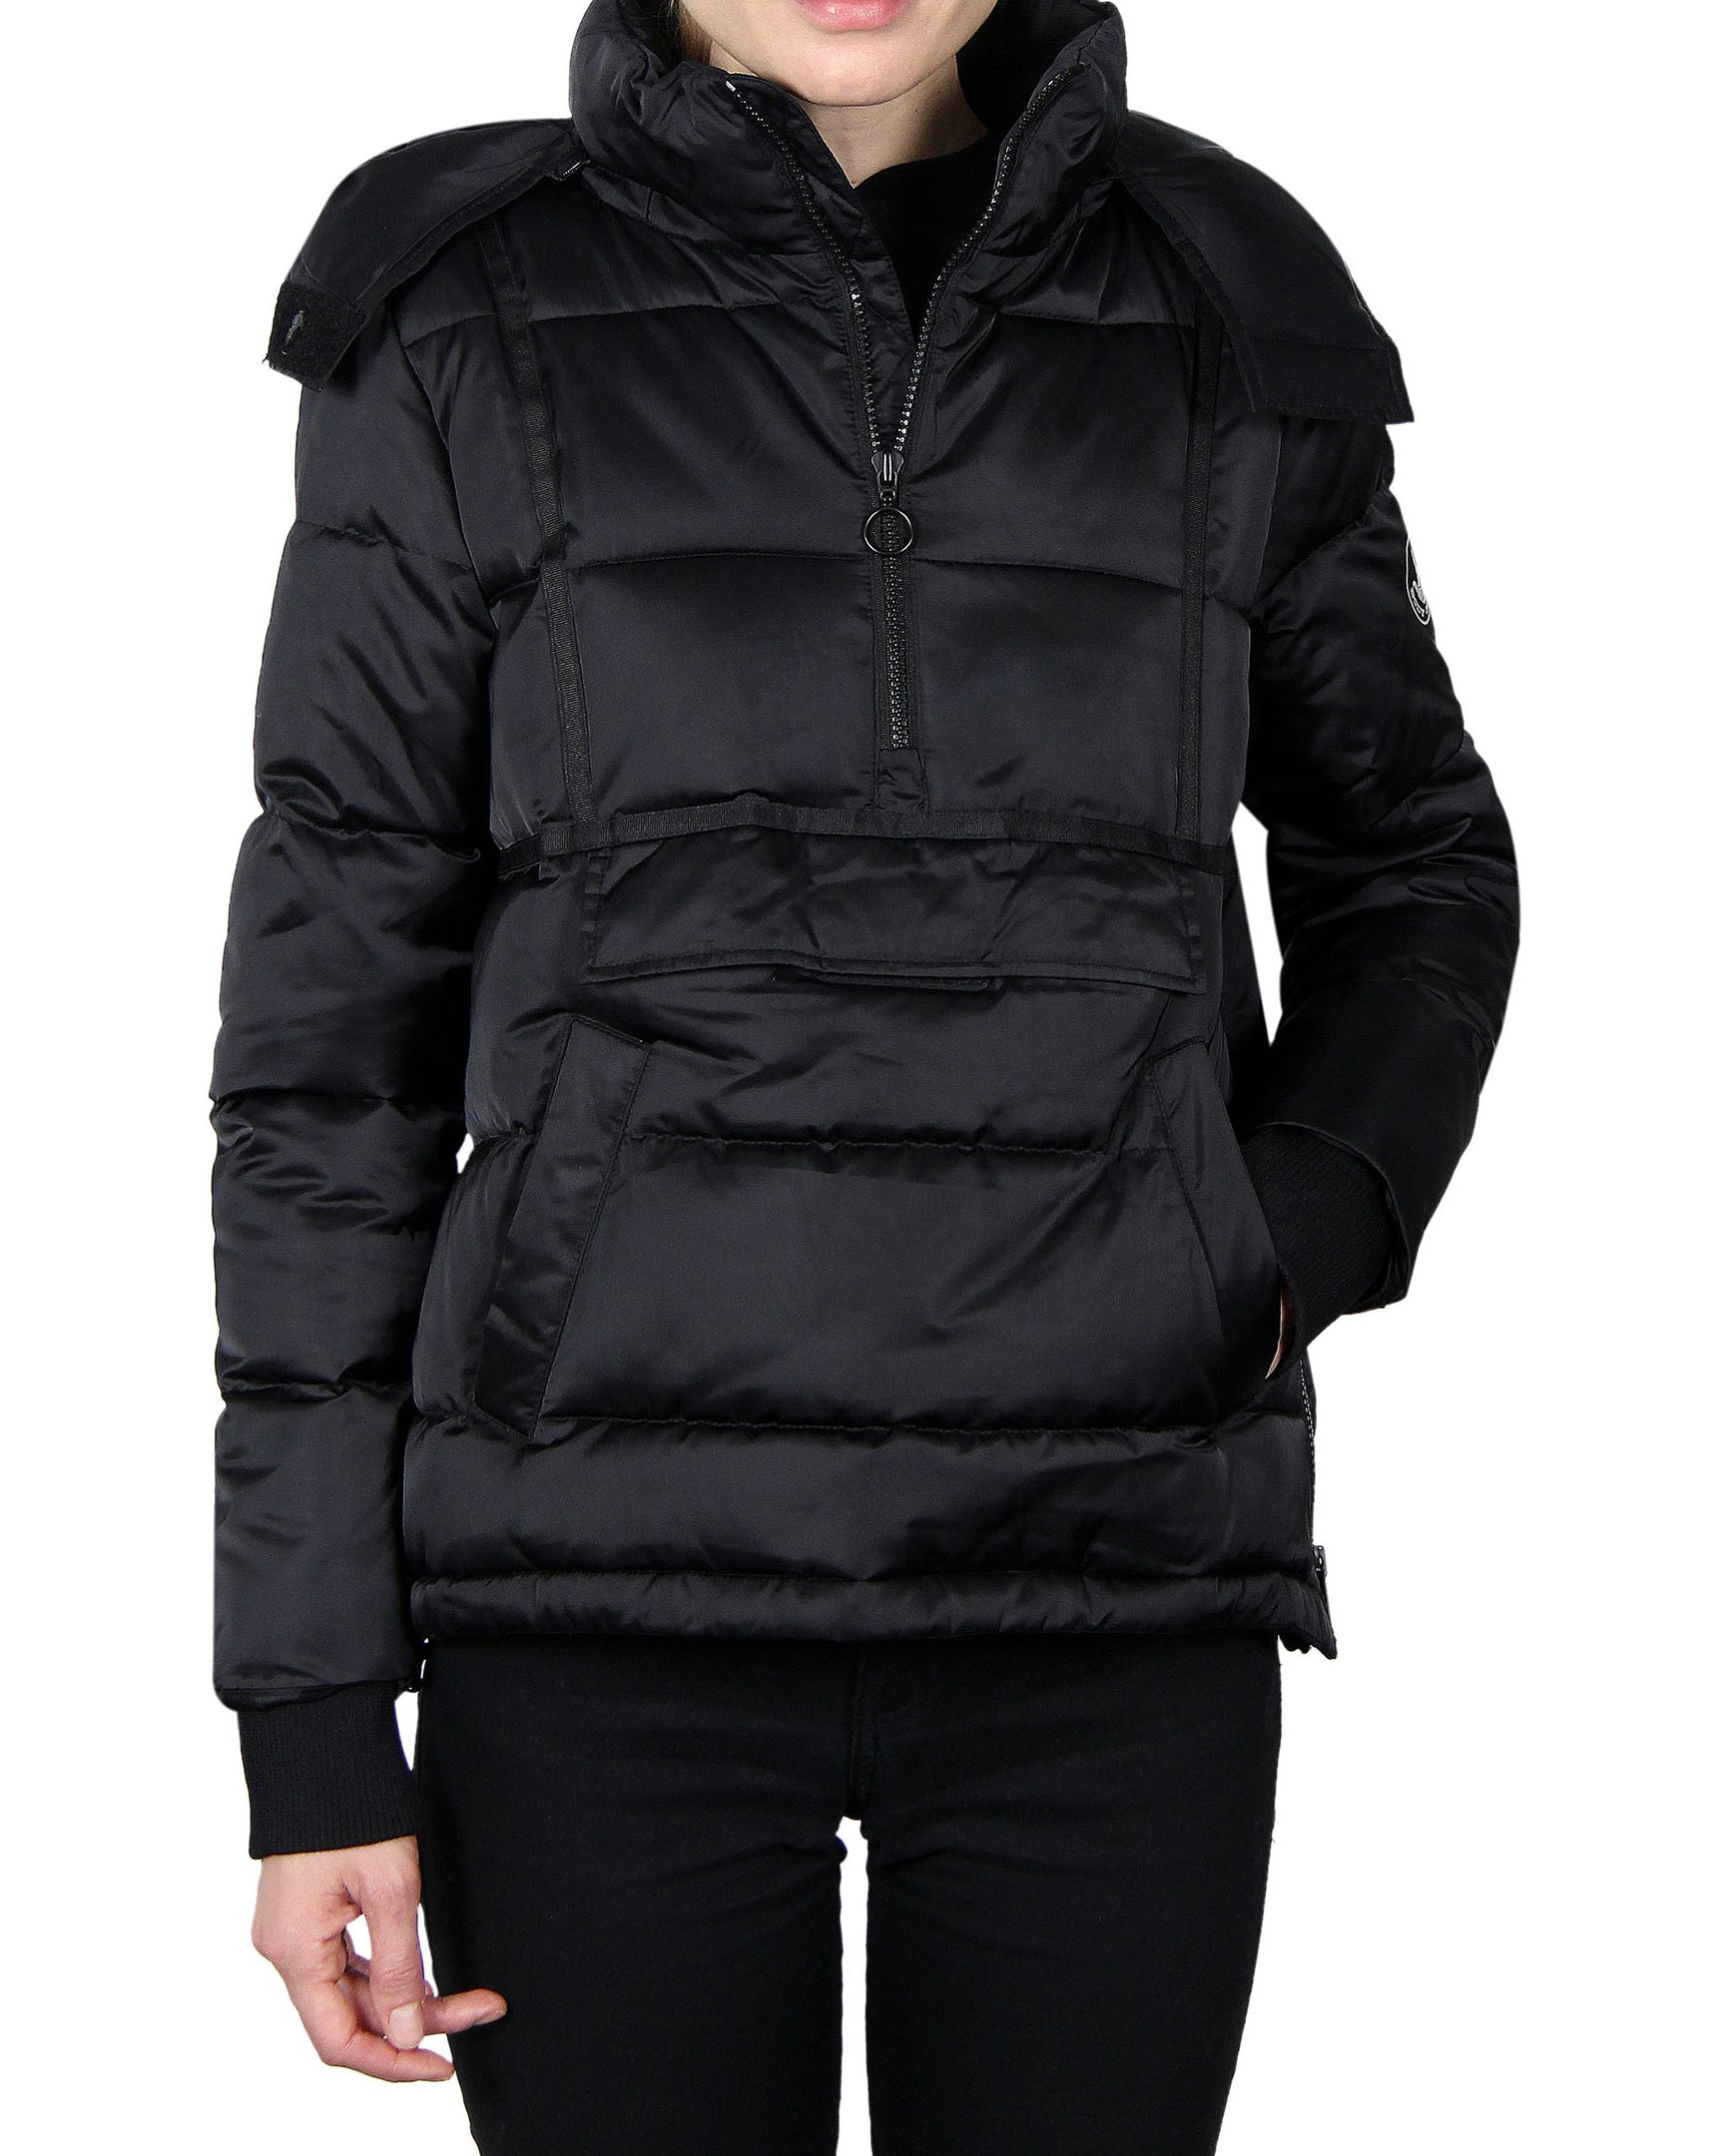 Women's Quilted Pullover - Black